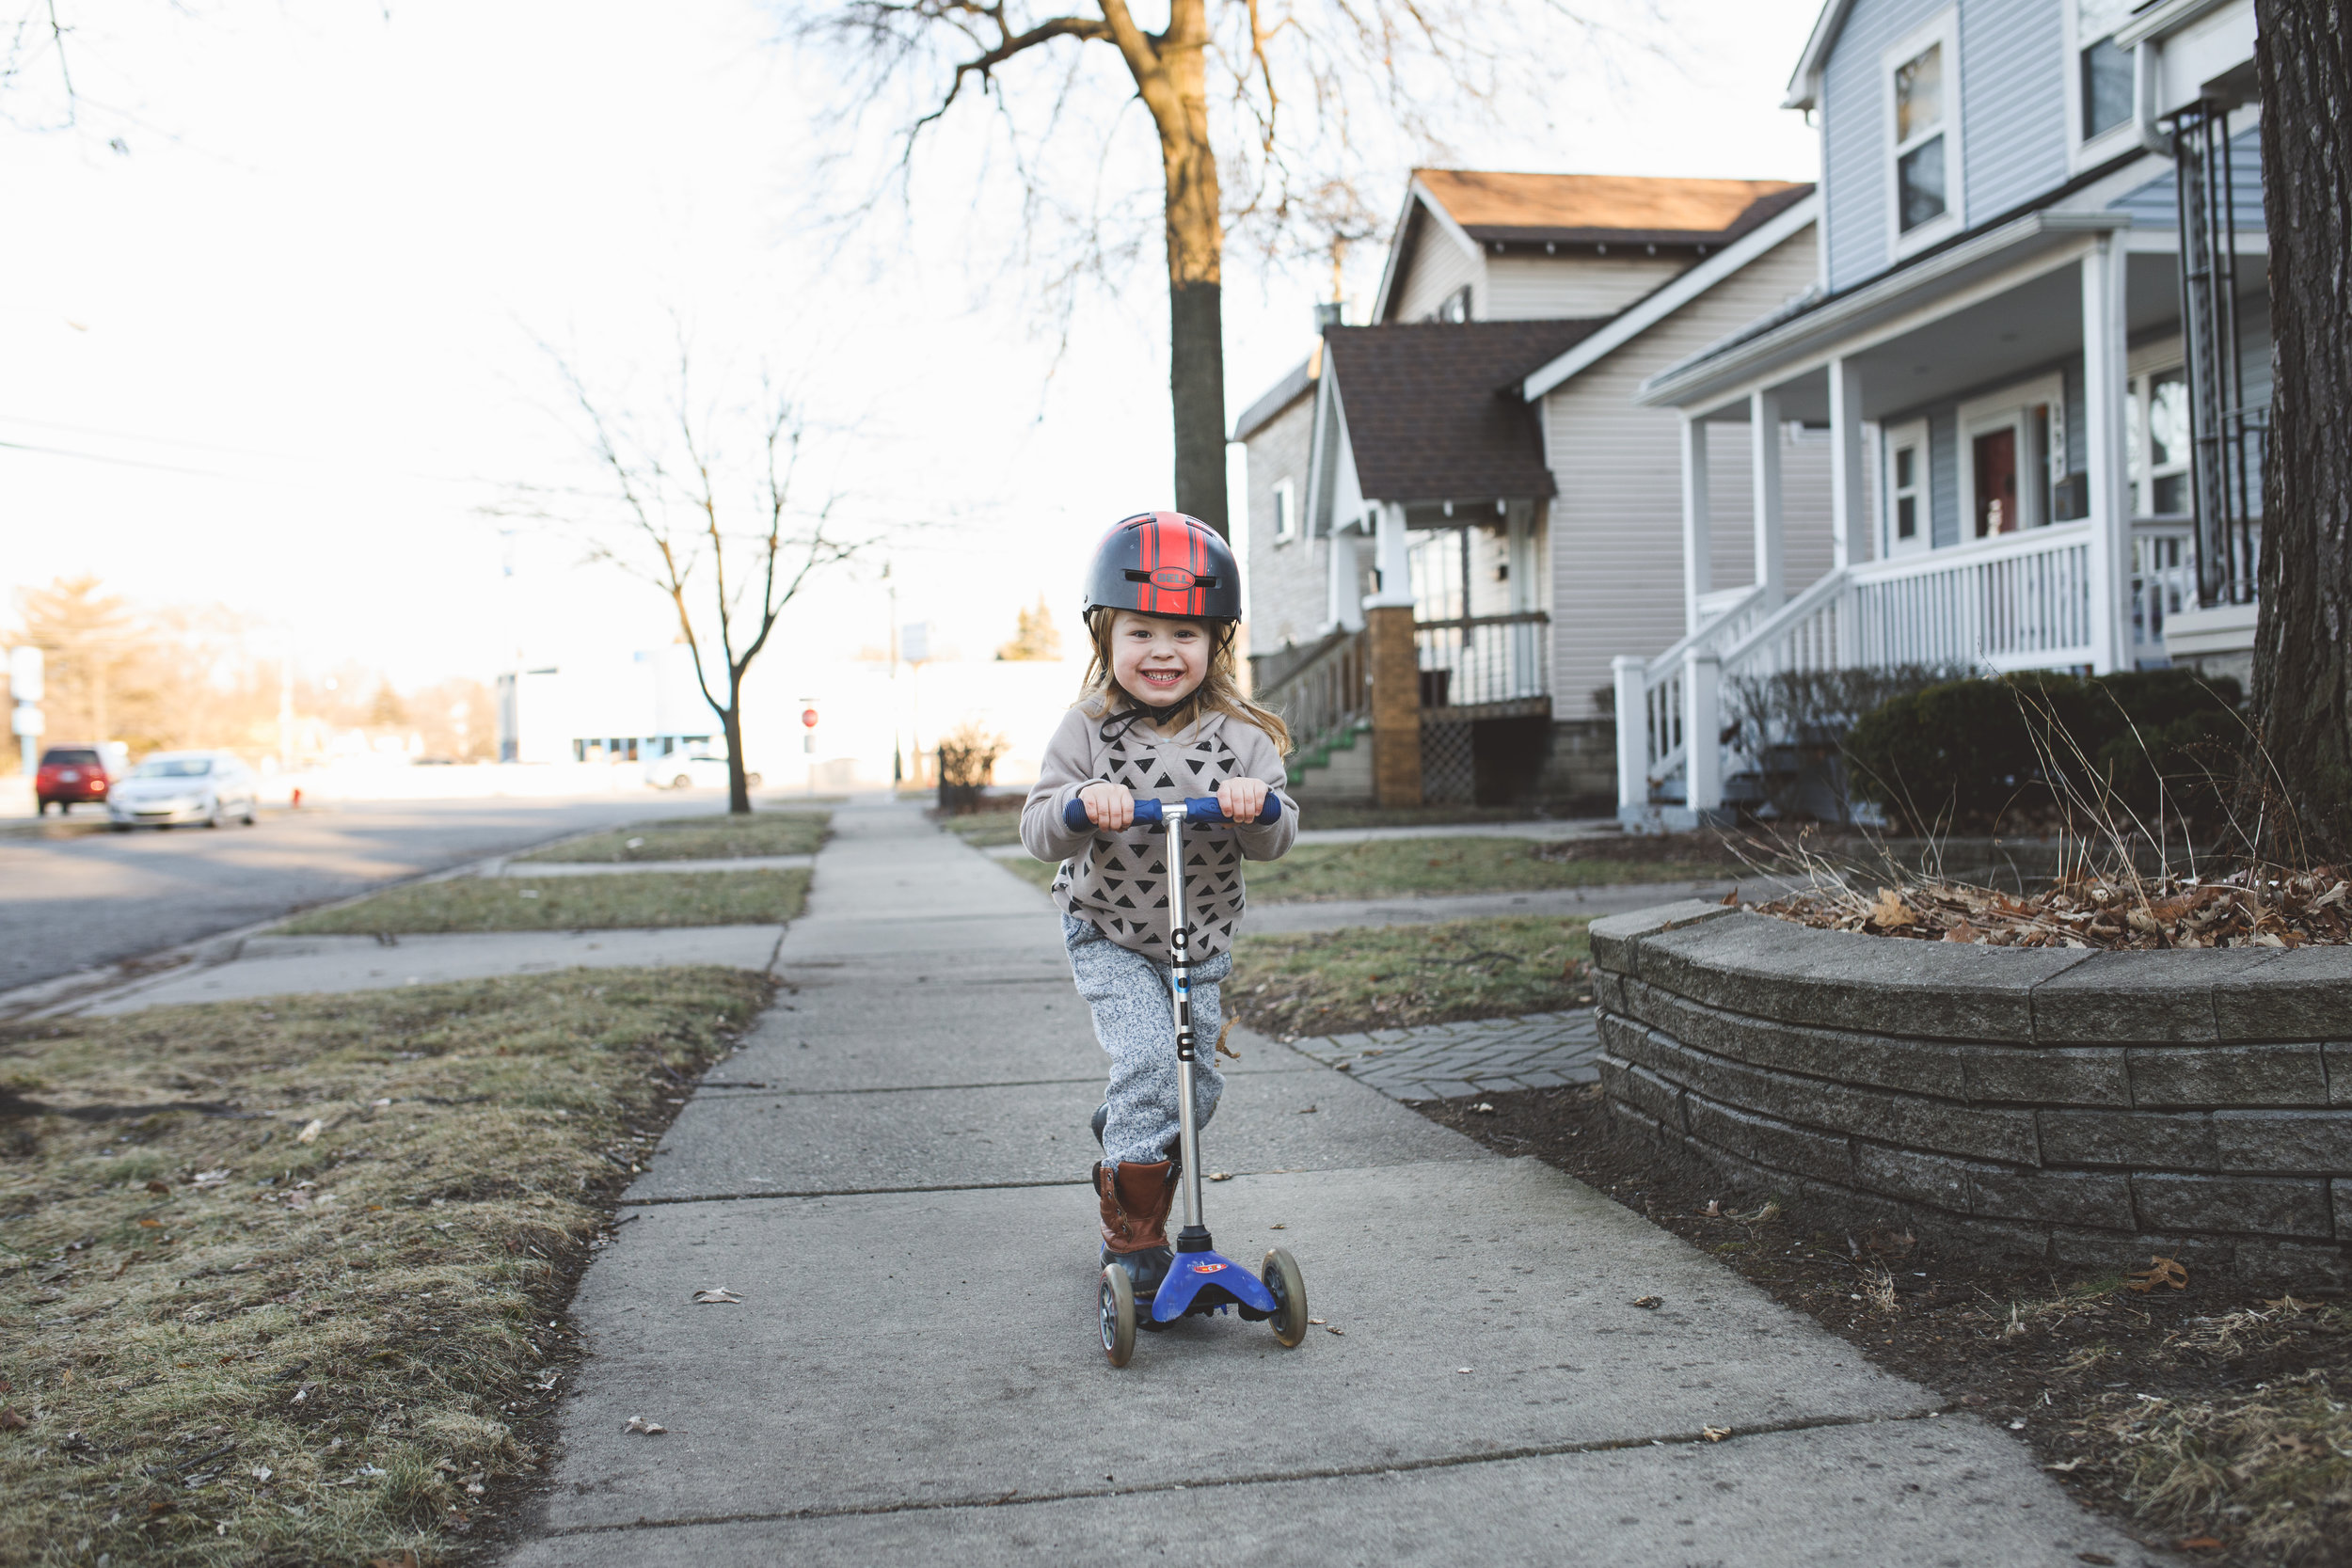 Little boy riding scooter.